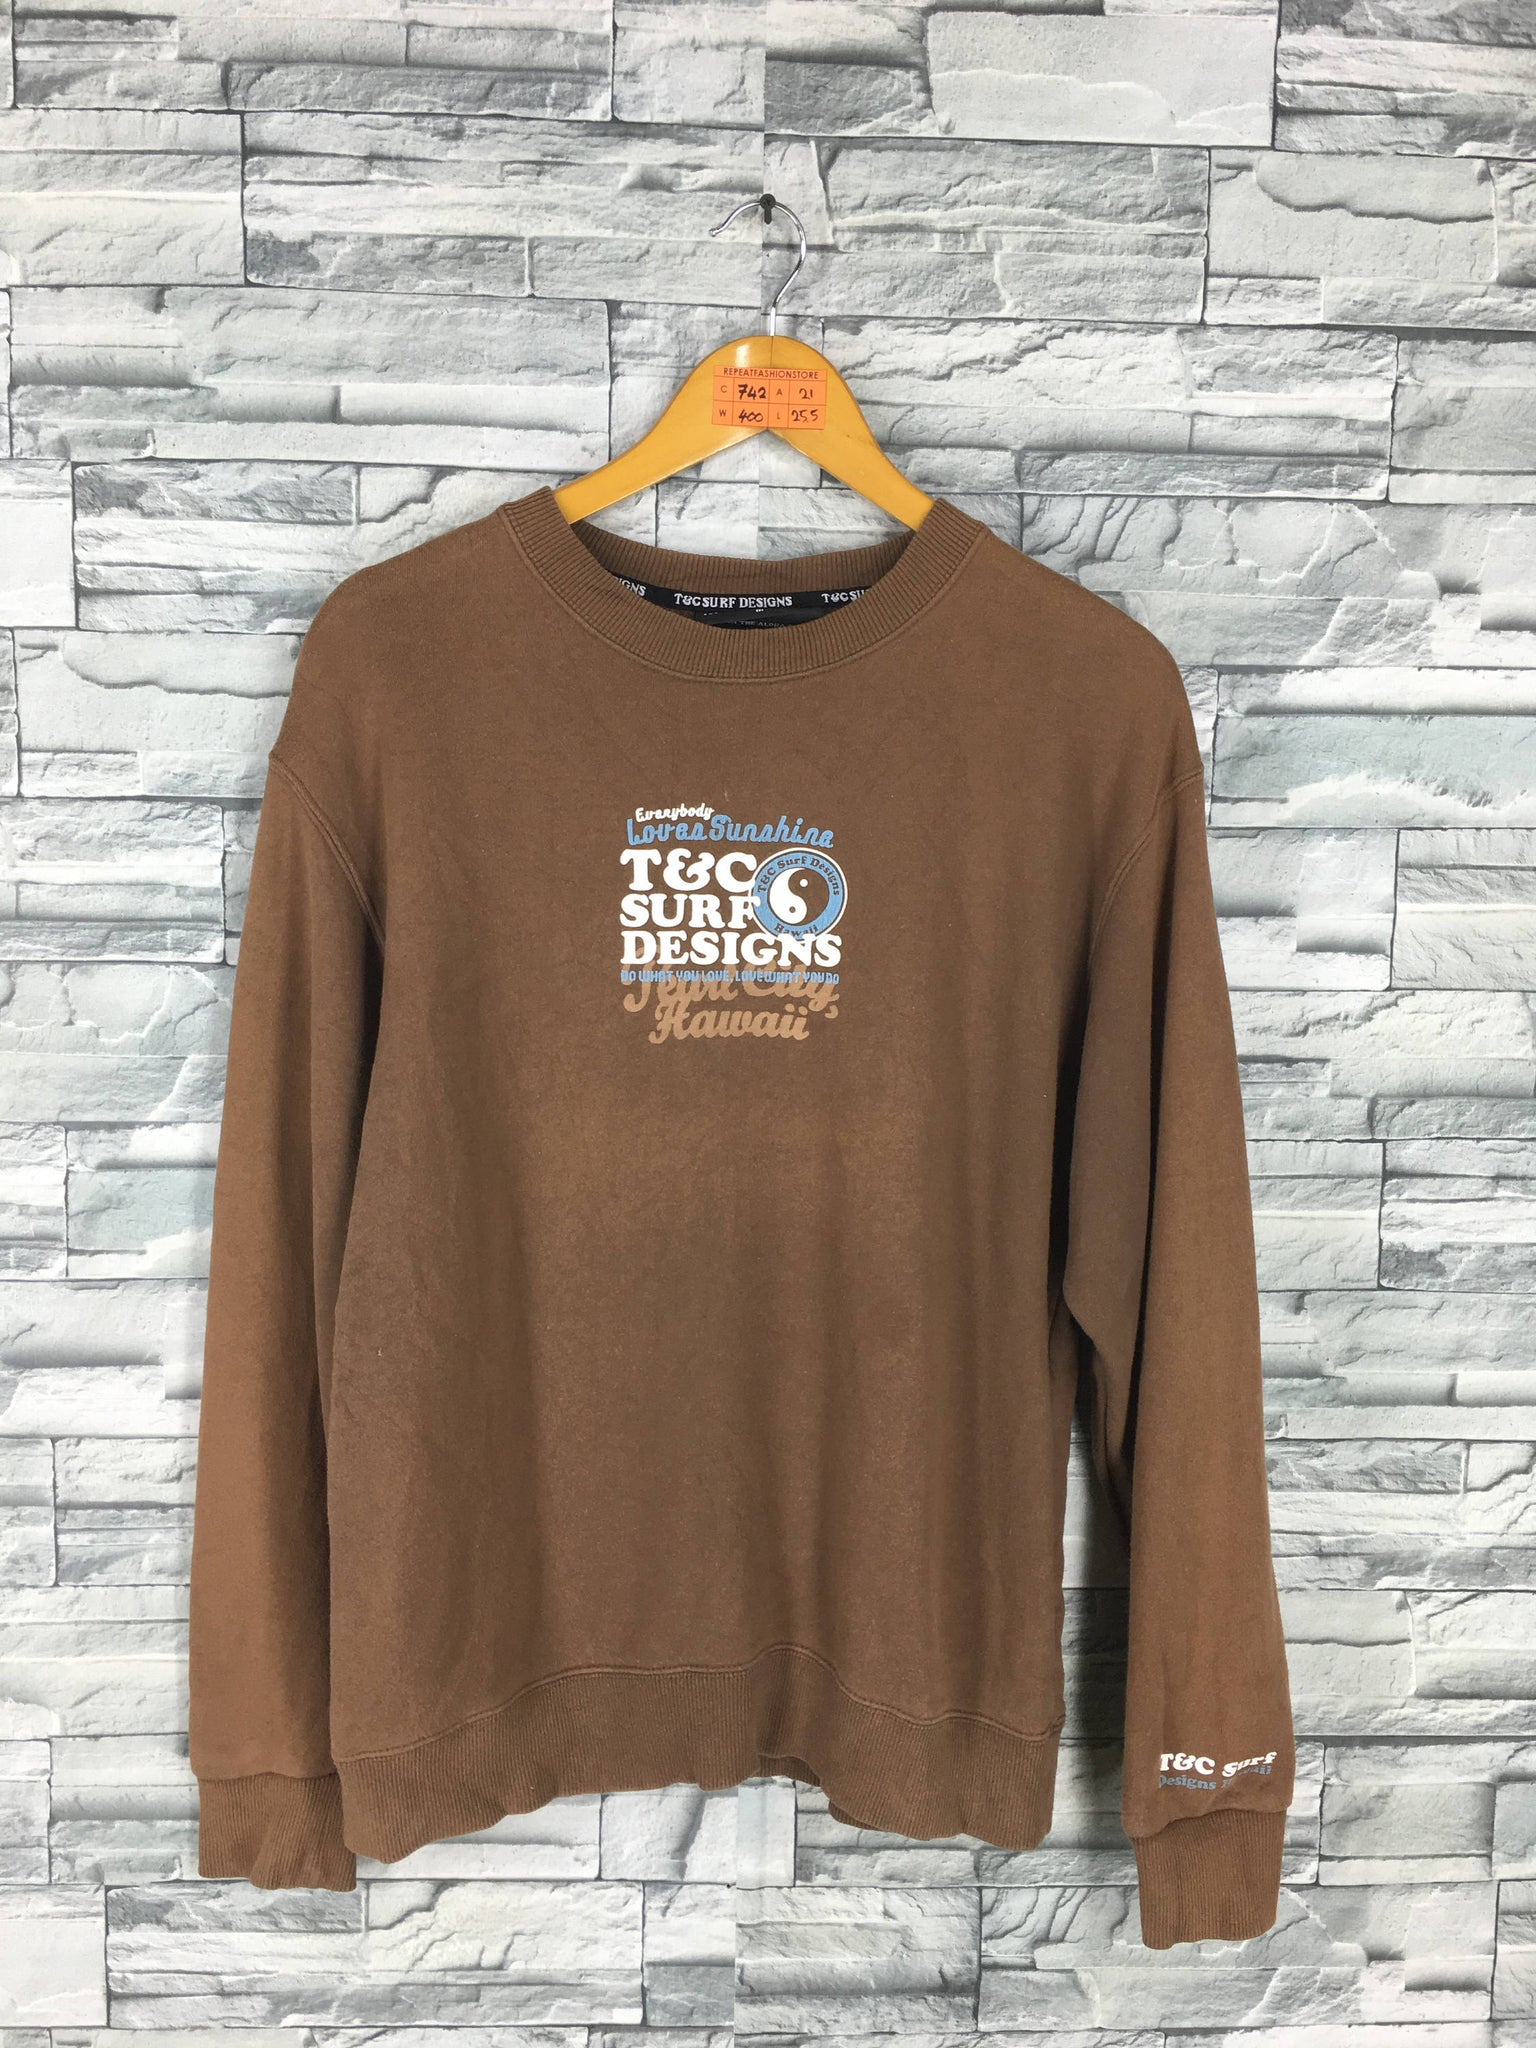 8c341e7144749 T C SURF Designs Men Medium Jumper Brown Crewneck Vintage 90 s Tnc ...